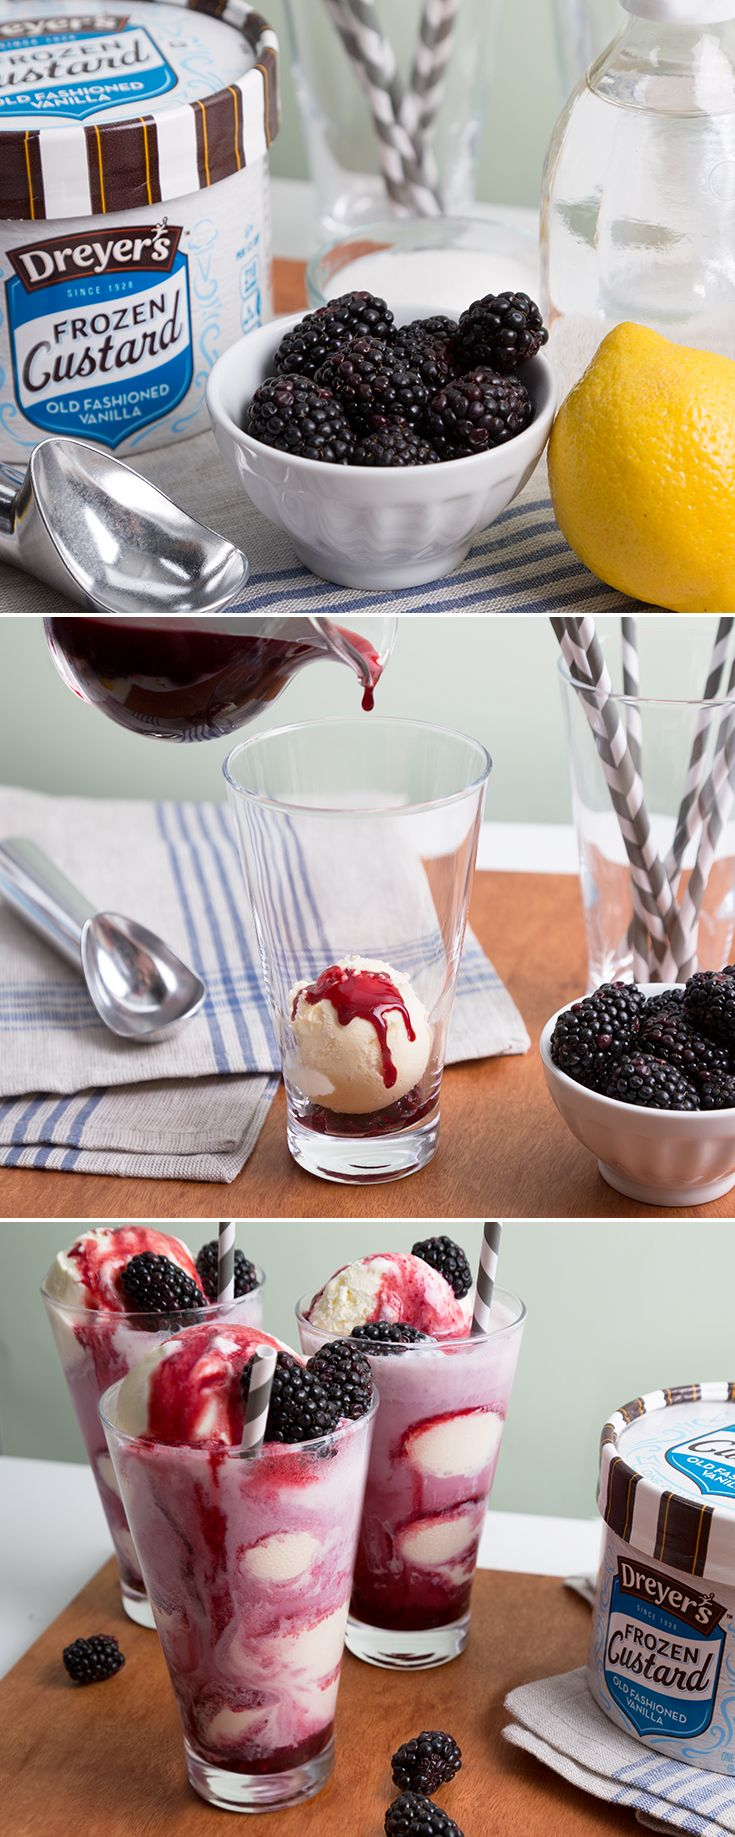 Dreyer's Frozen Custard Blackberry Sodas: Your entire family will think this frozen treat is berry delicious!